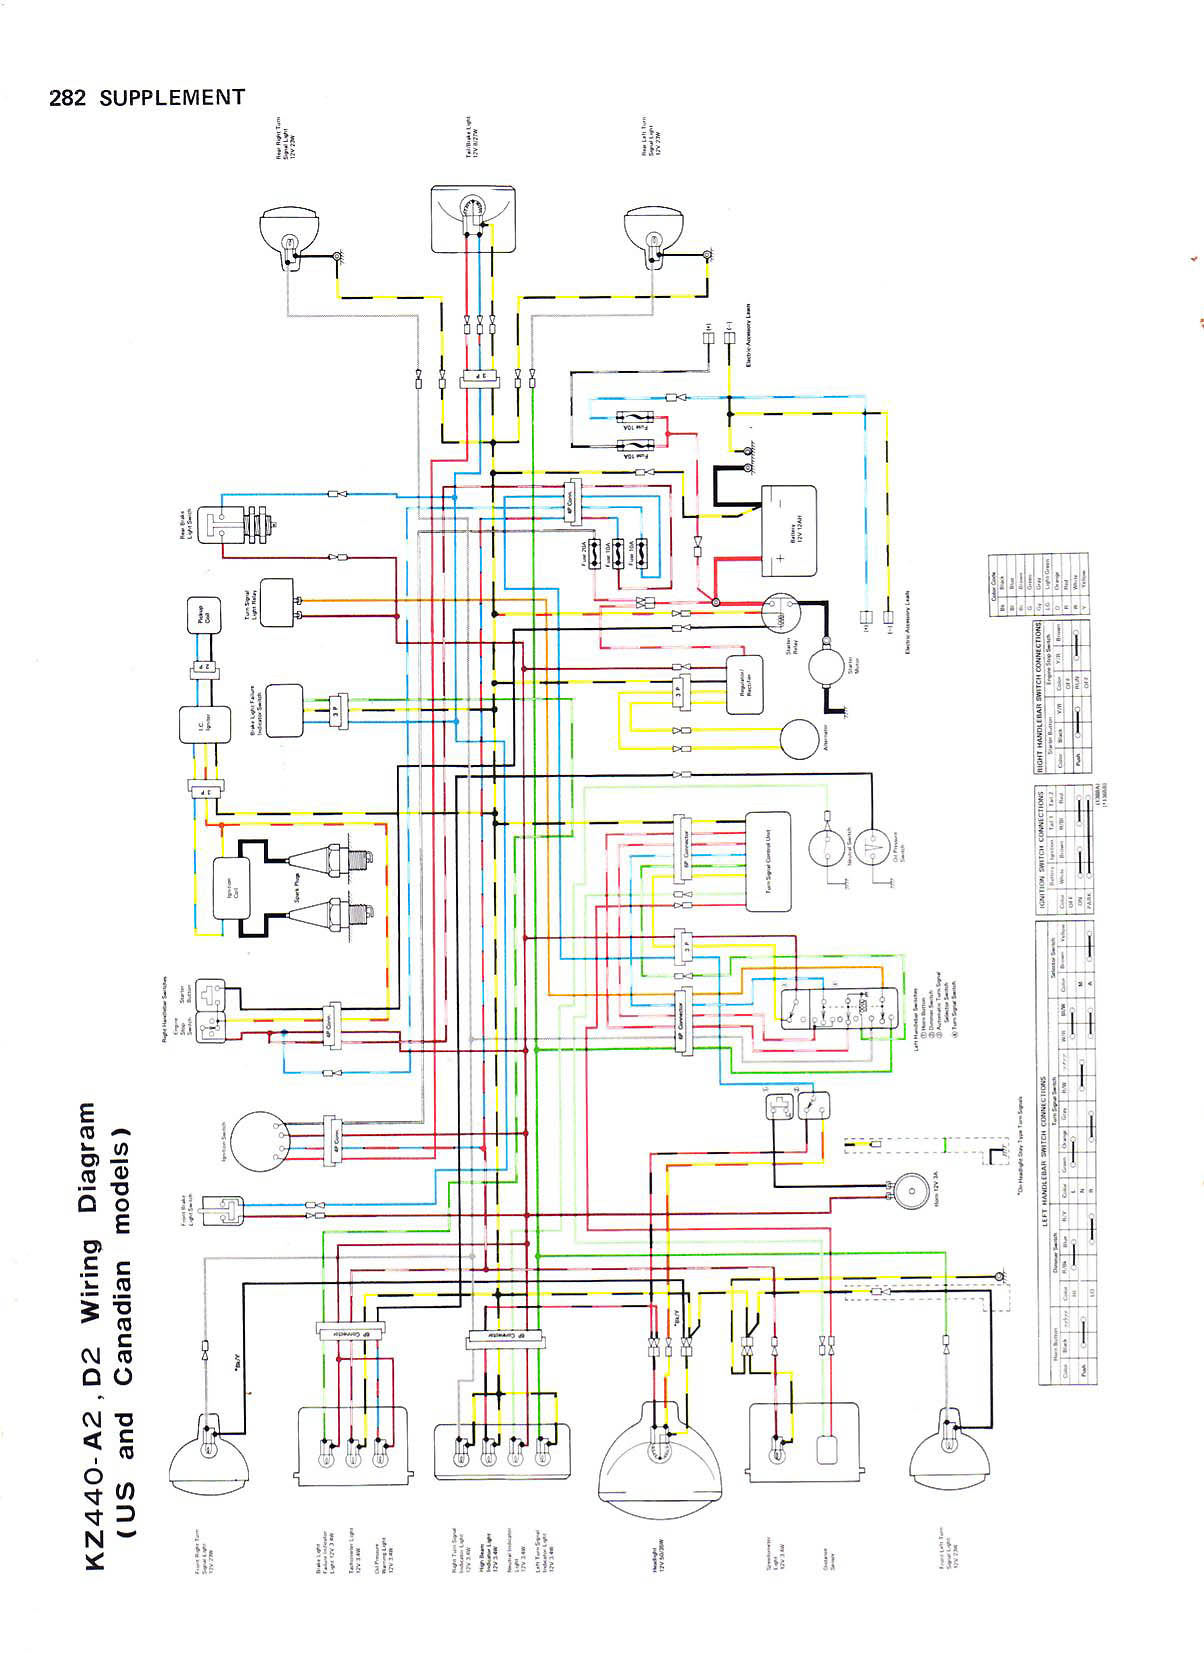 Kawasaki KZ 440 %2780 a %2782 Service Manual_Page_279 index of kz440 wiring diagrams kz400 wiring diagram at alyssarenee.co